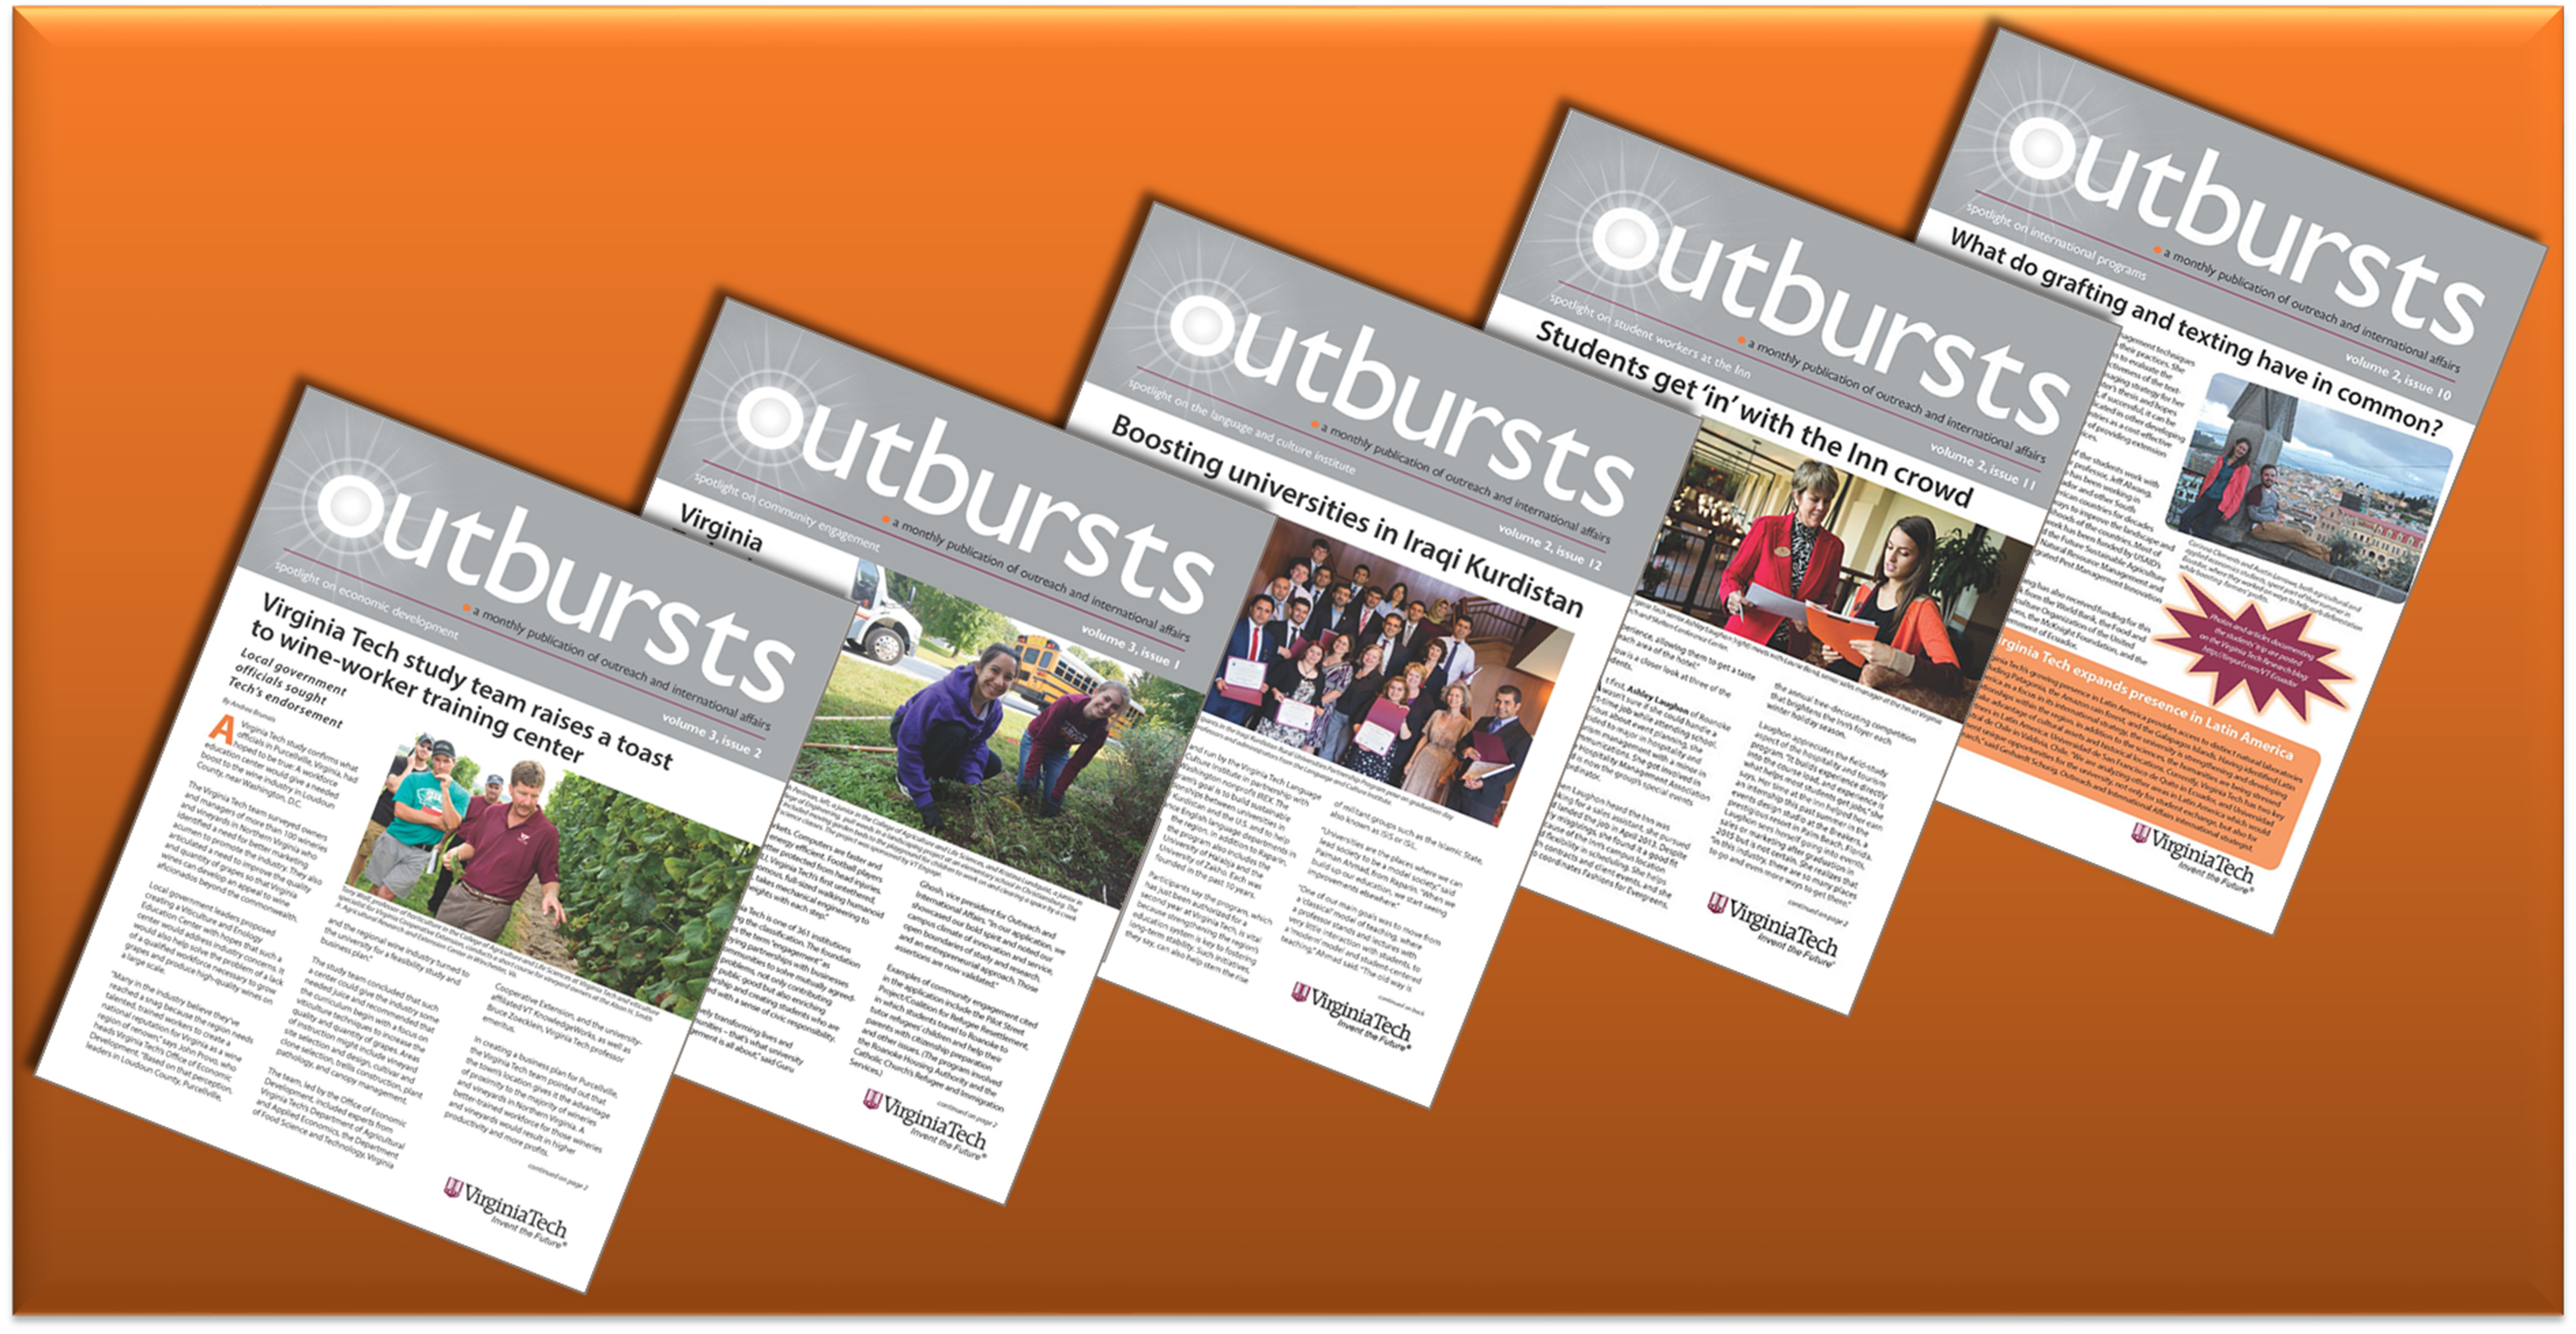 Outbursts fall-winter issues 2014-15